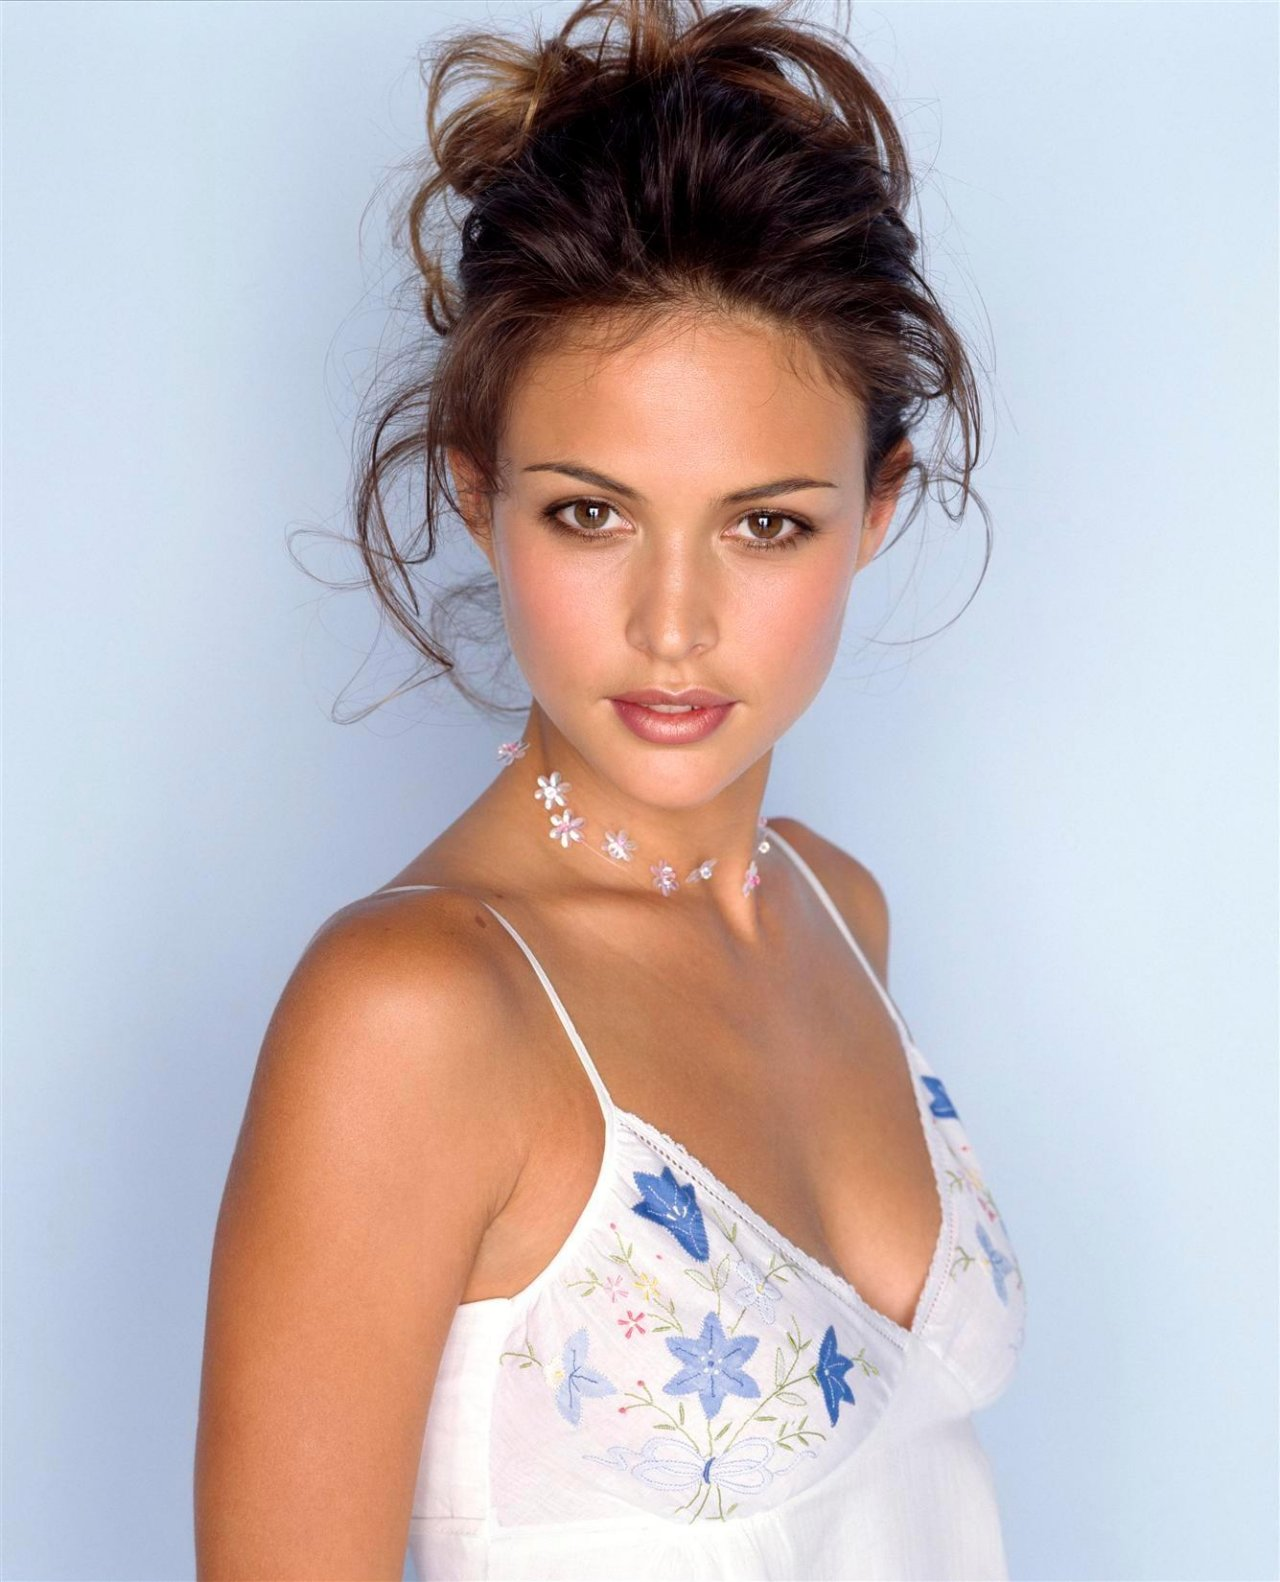 Josie Maran - Wallpaper Actress